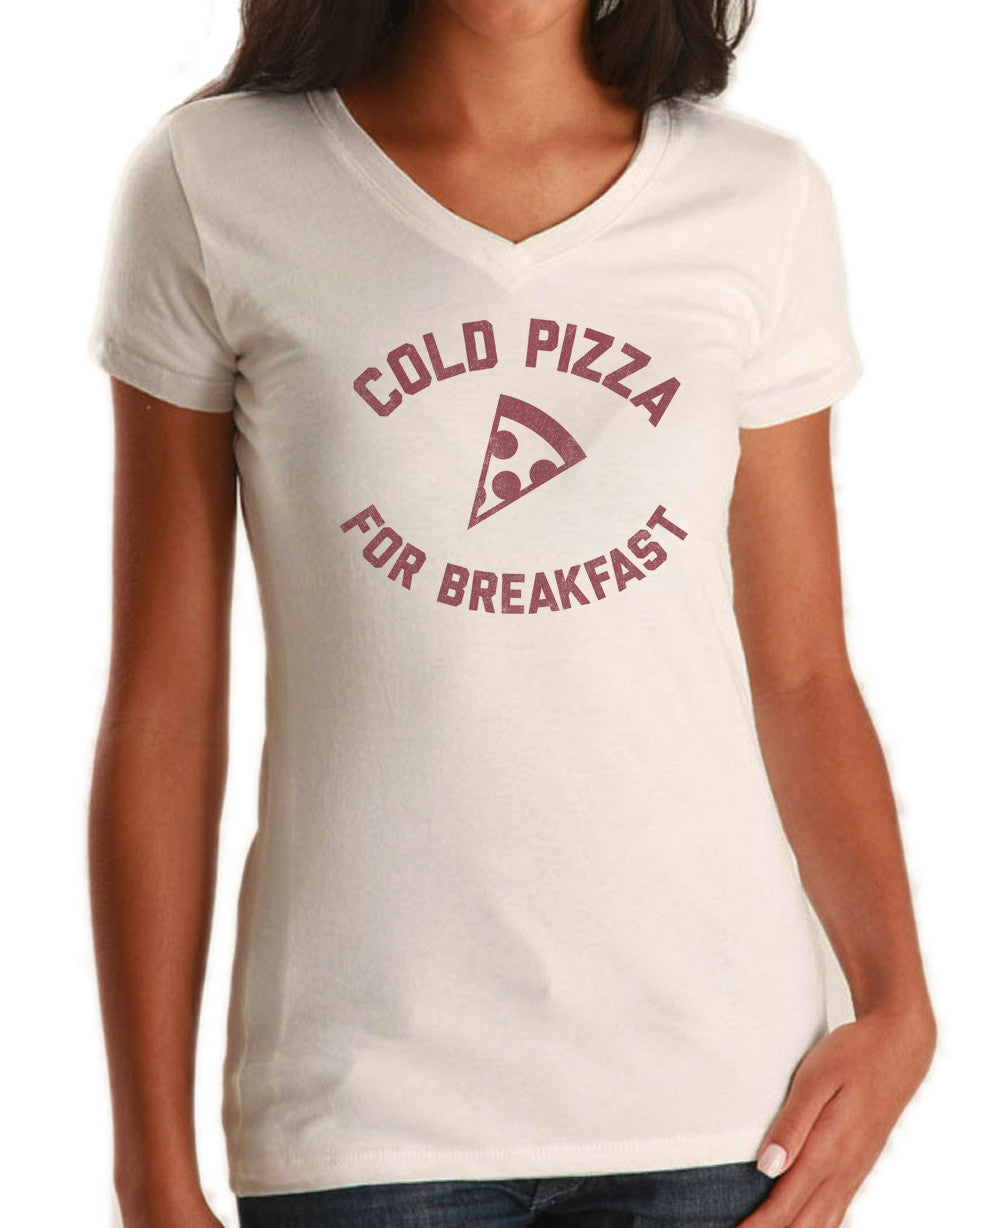 Women's Cold Pizza For Breakfast Vneck T-Shirt Funny Hipster Foodie